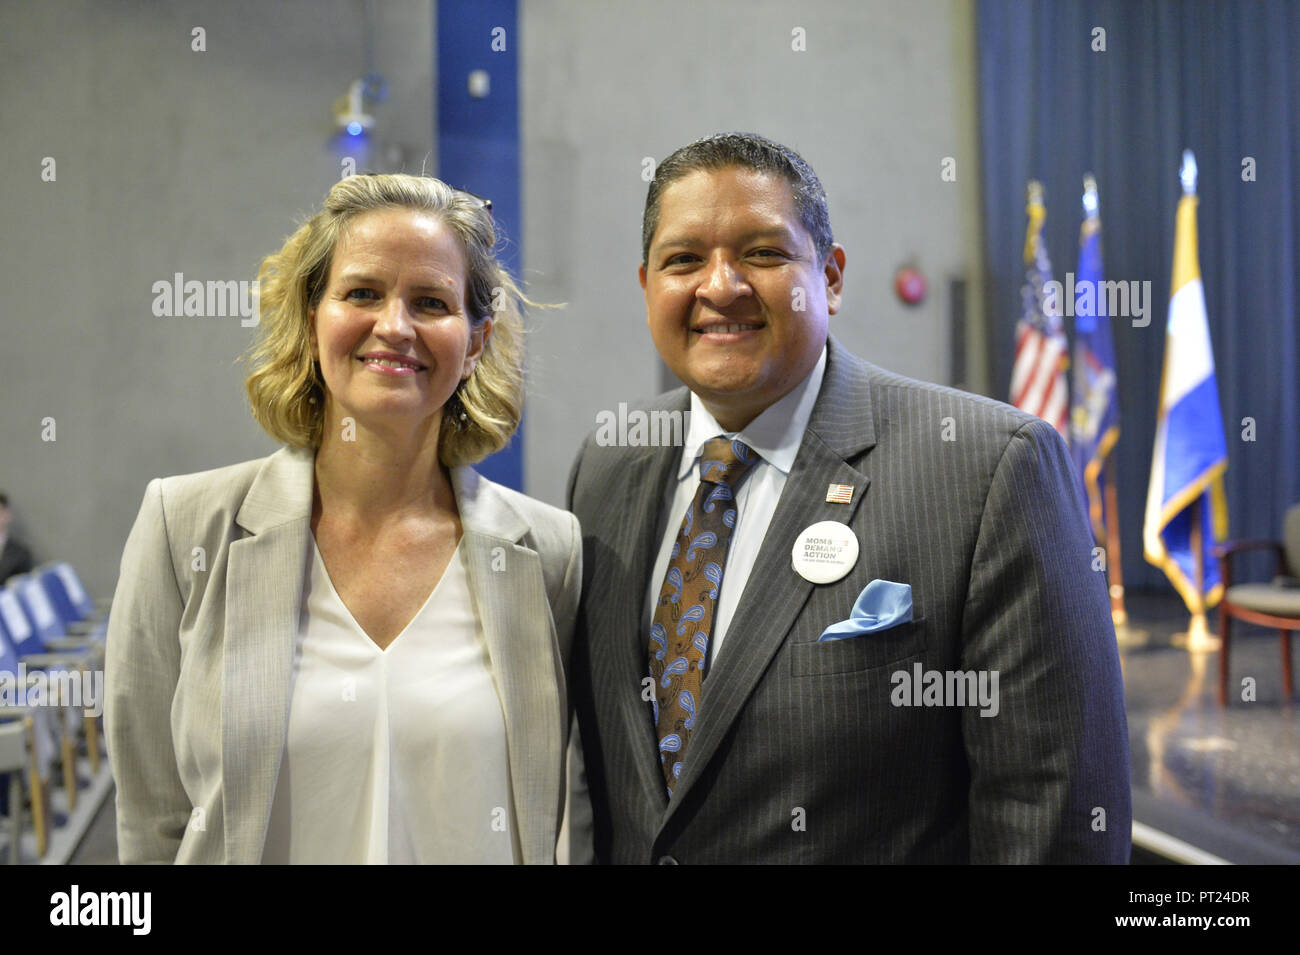 Hempstead, New York, USA. 5th Oct, 2018. L-R, Democrats Nassau County Executive LAURA CURRAN and JUAN VIDES, candidate for NYS 20th Assembly District, pose before start of U.S. Sen. Gillibrand's Town Hall Meeting at Hofstra University on Long Island. Credit: Ann Parry/ZUMA Wire/Alamy Live News - Stock Image